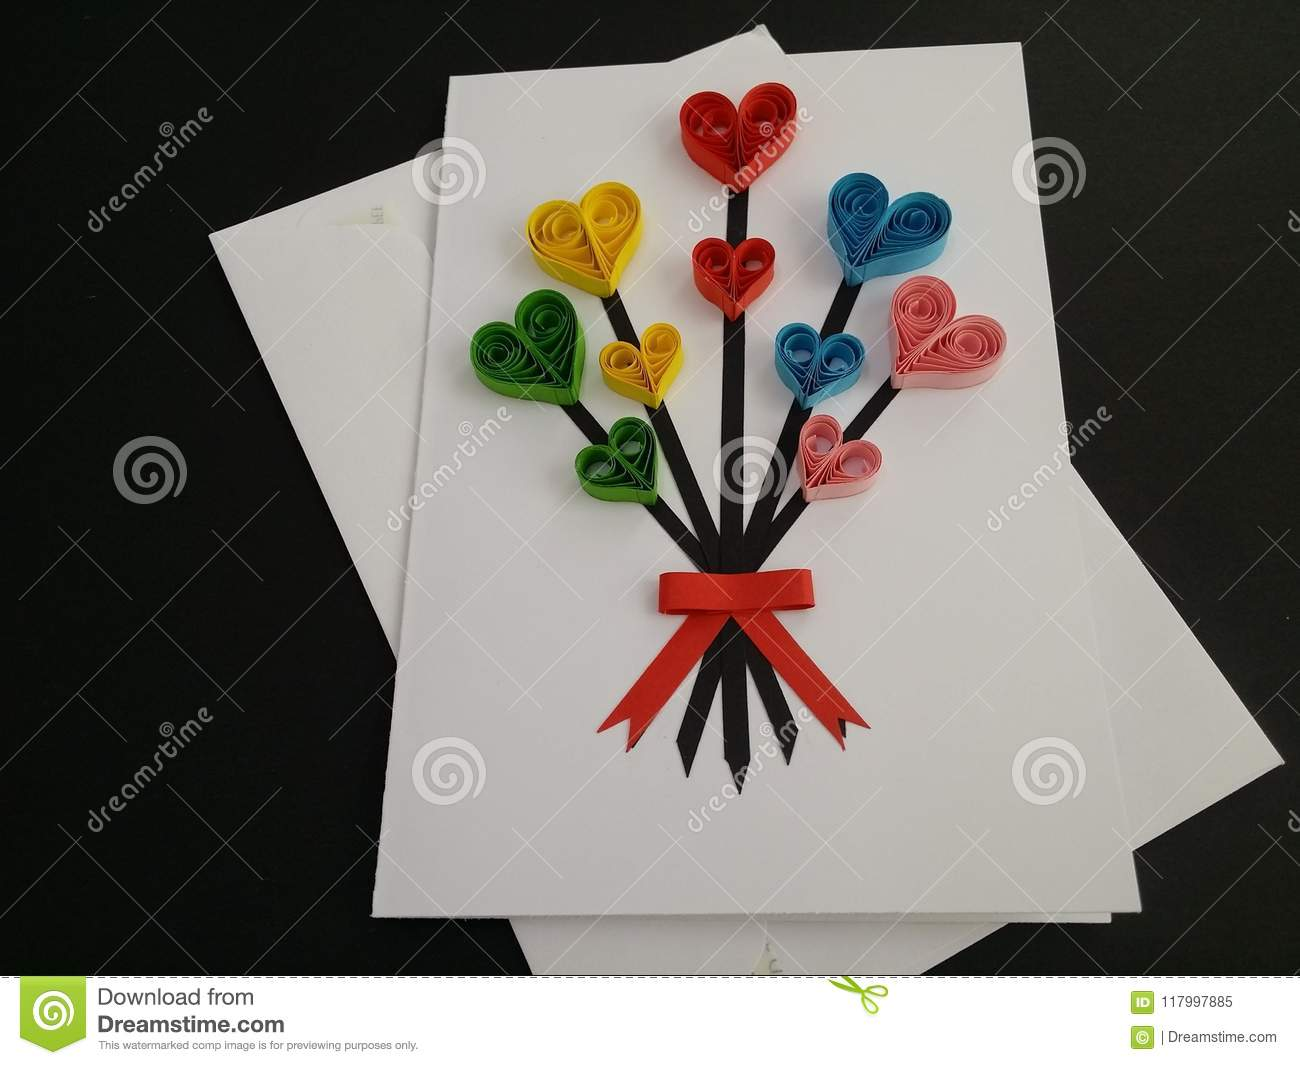 Paper Quilling Greeting Cards All The Events Birthday New Year Ramadan Friendship Day